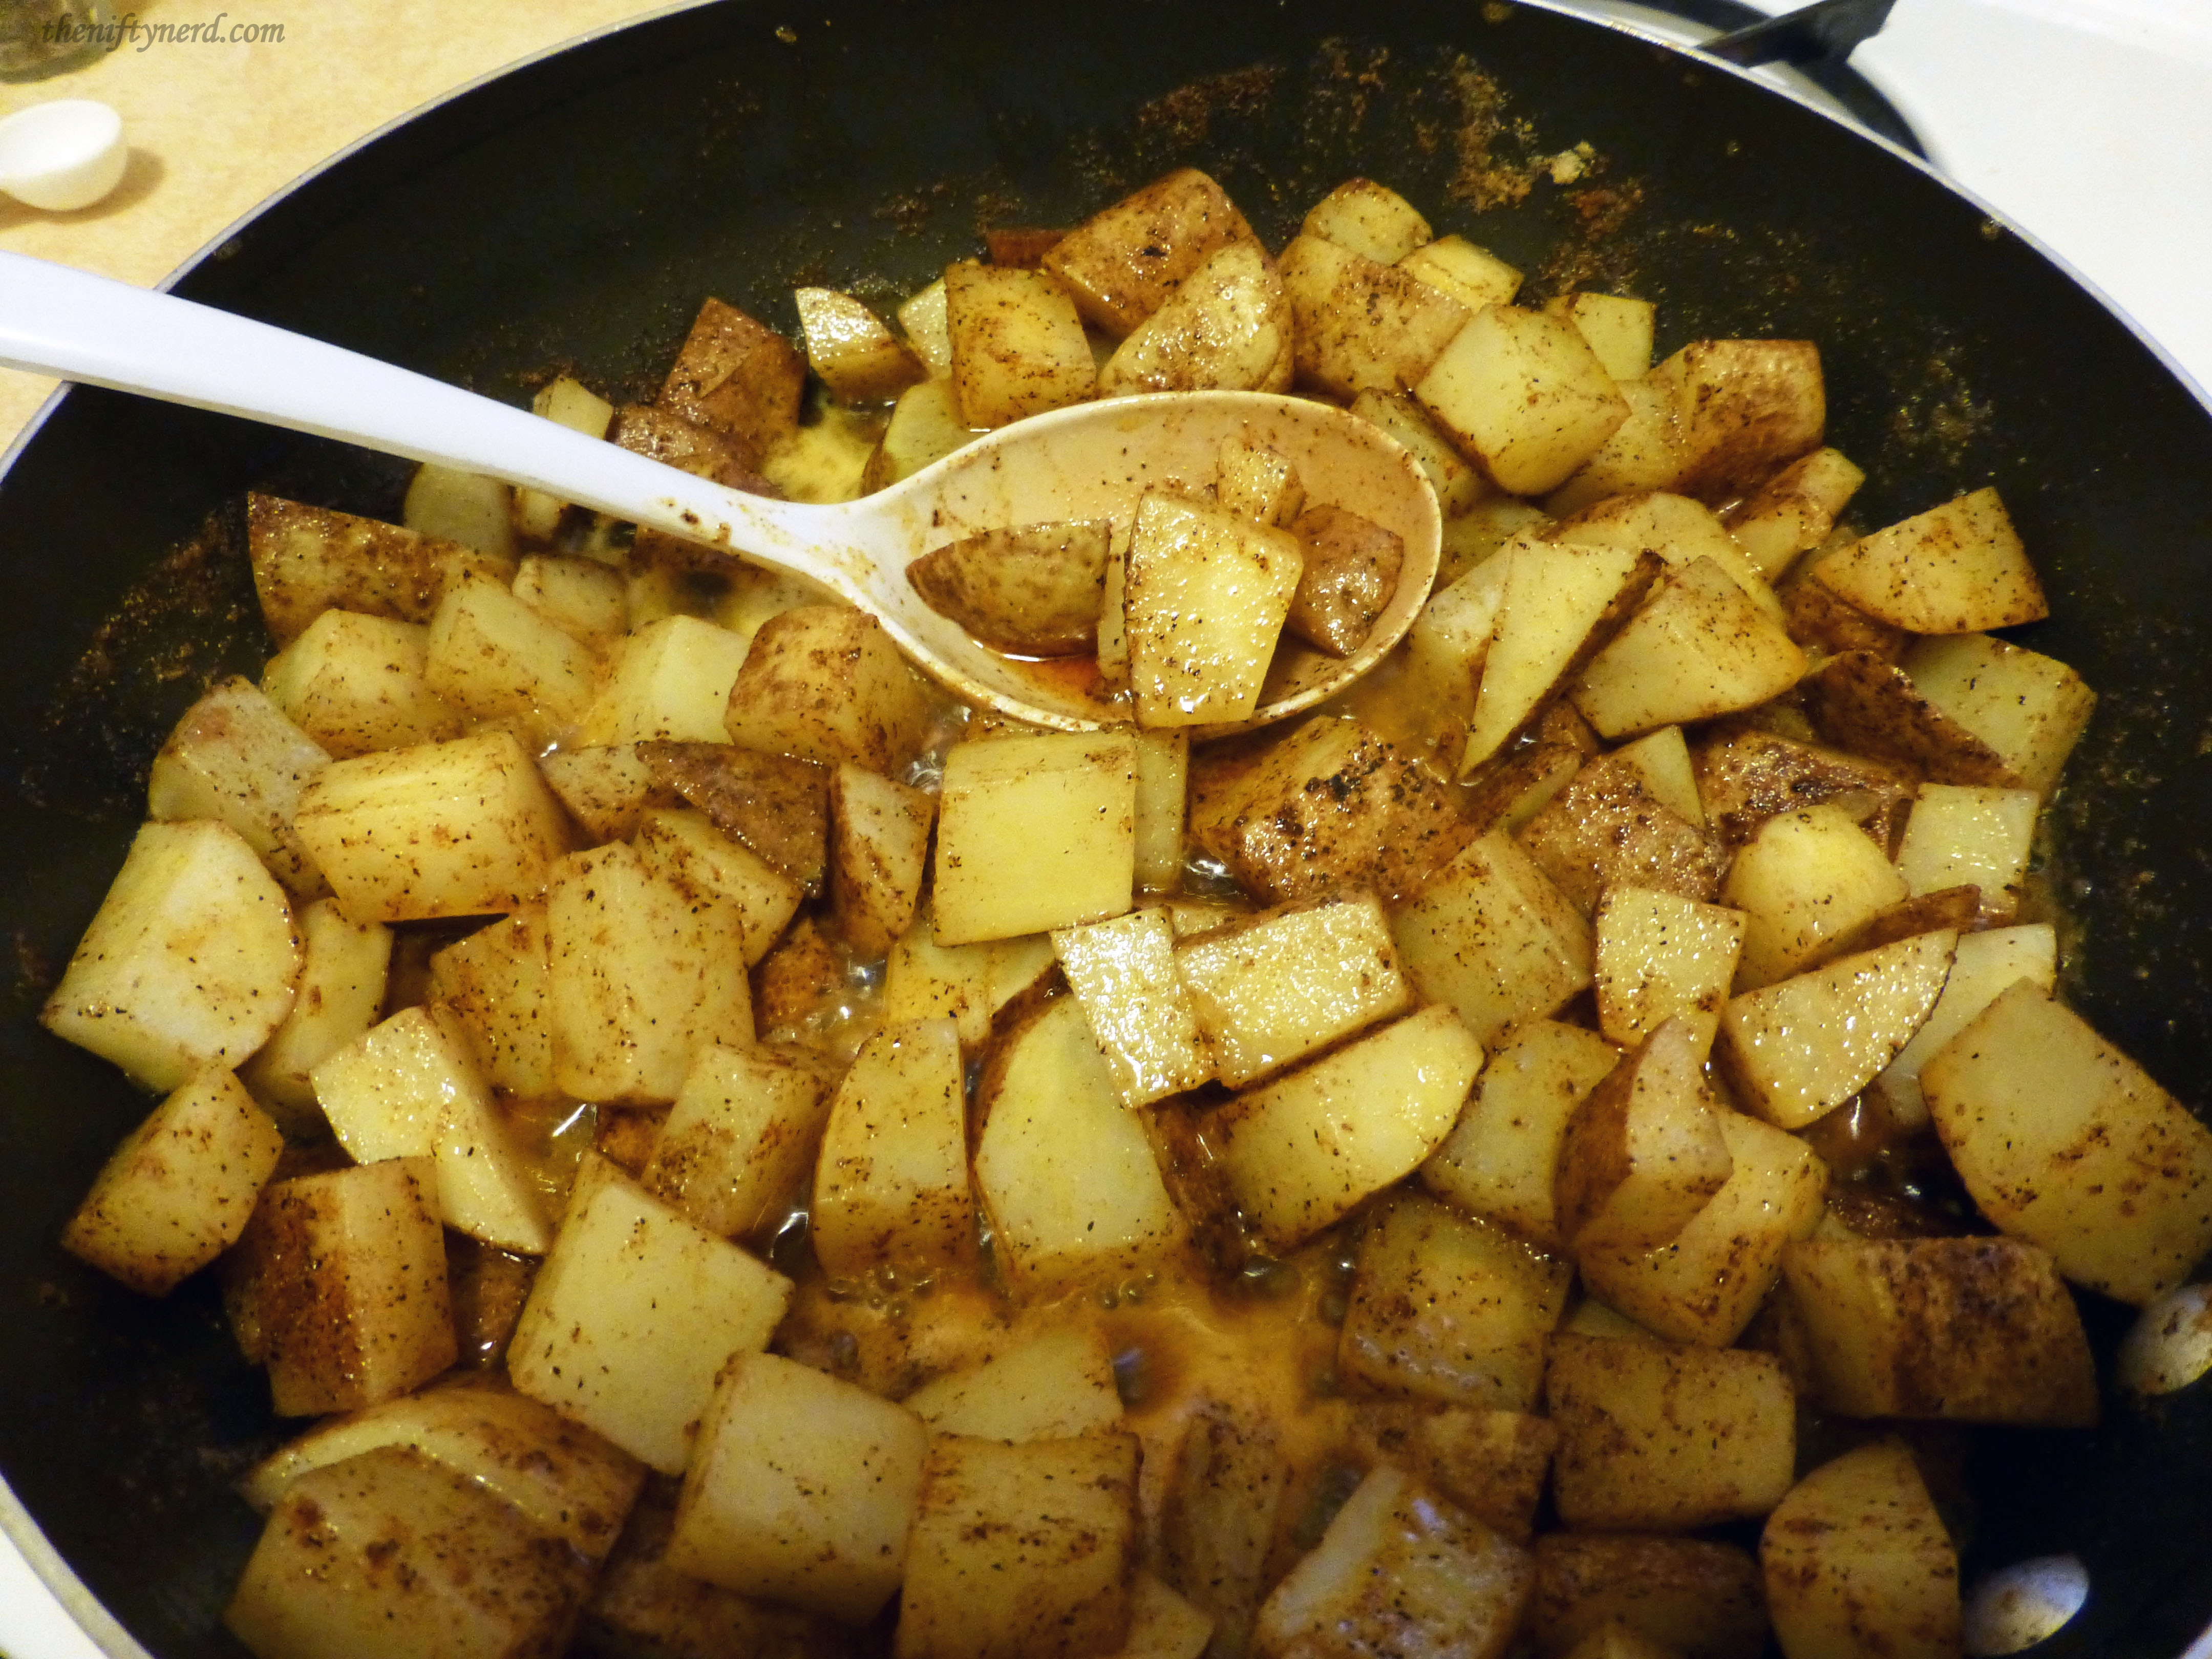 cooking Otik's spiced potatoes